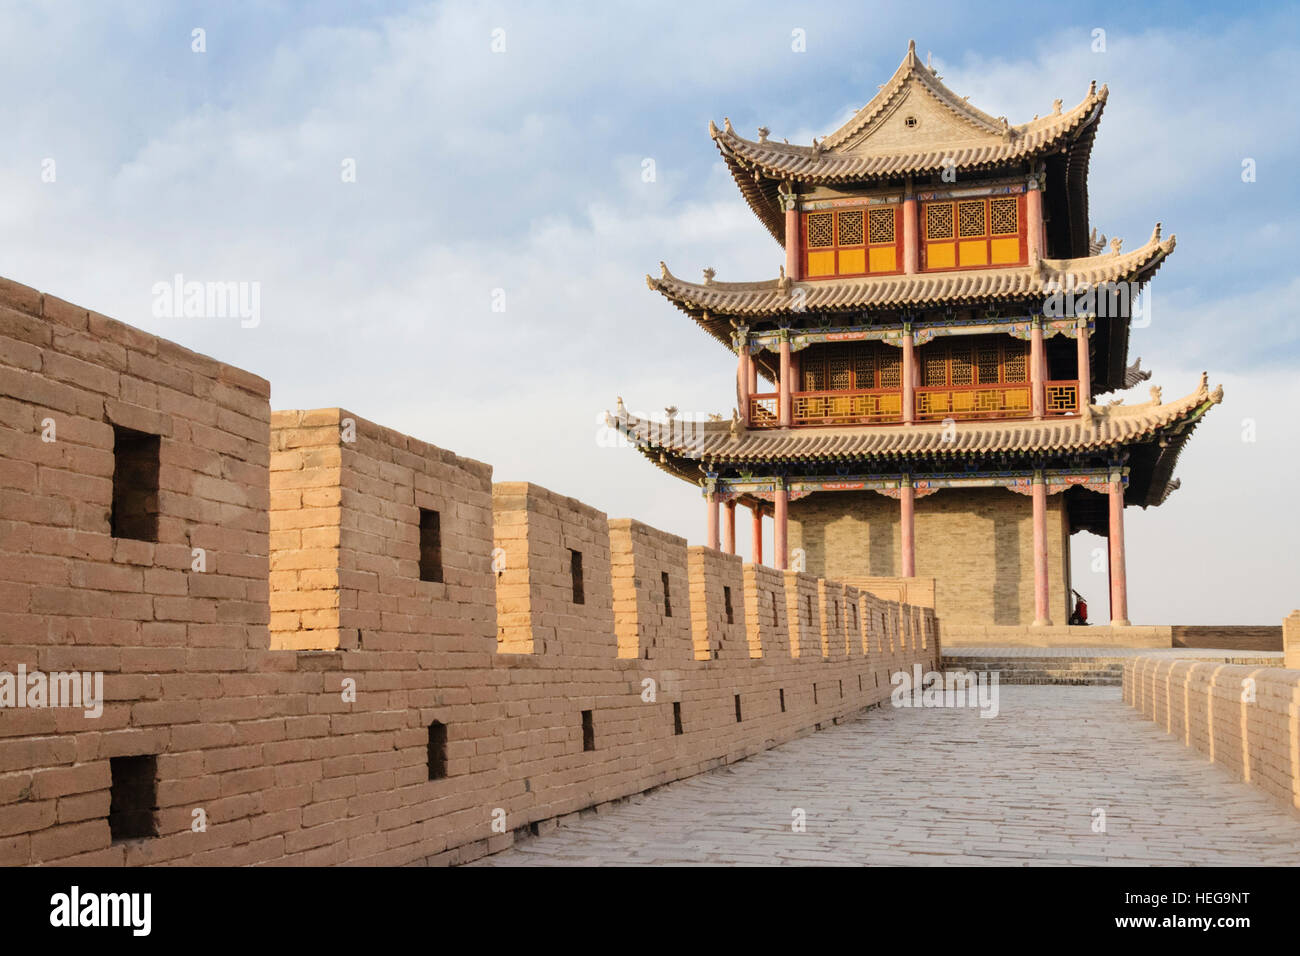 Jiayuguan fort at the western confine of the Great Wall. Jiayuguan, Gansu province, China, Asia The pass was a key - Stock Image